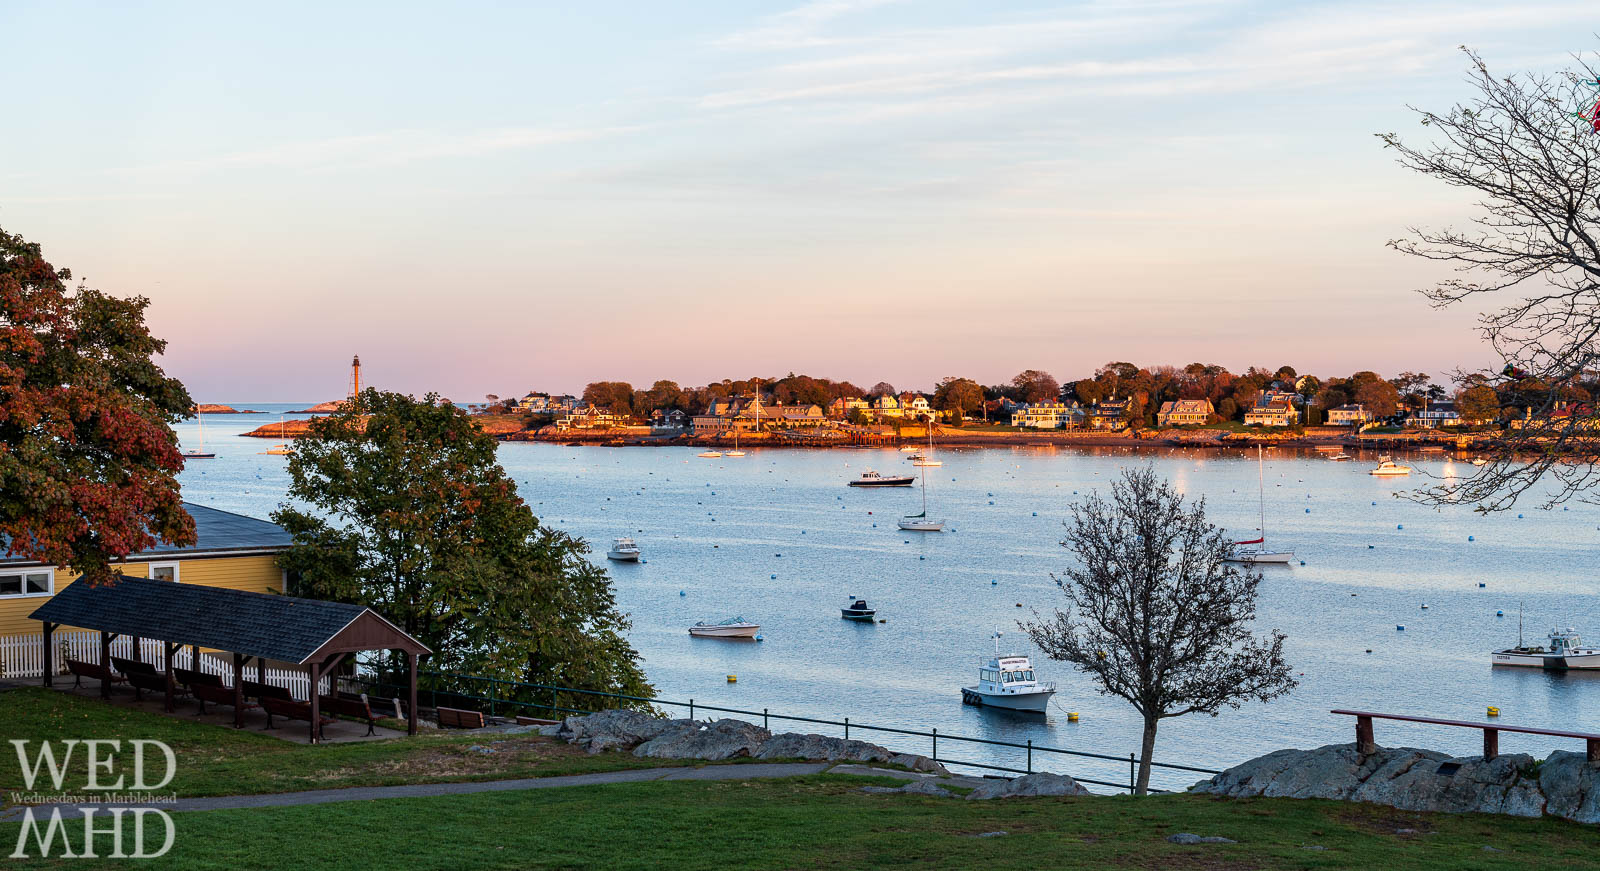 Fall in Marblehead features the beauty of foliage in the trees at Crocker Park but also the sad view of an emptying harbor